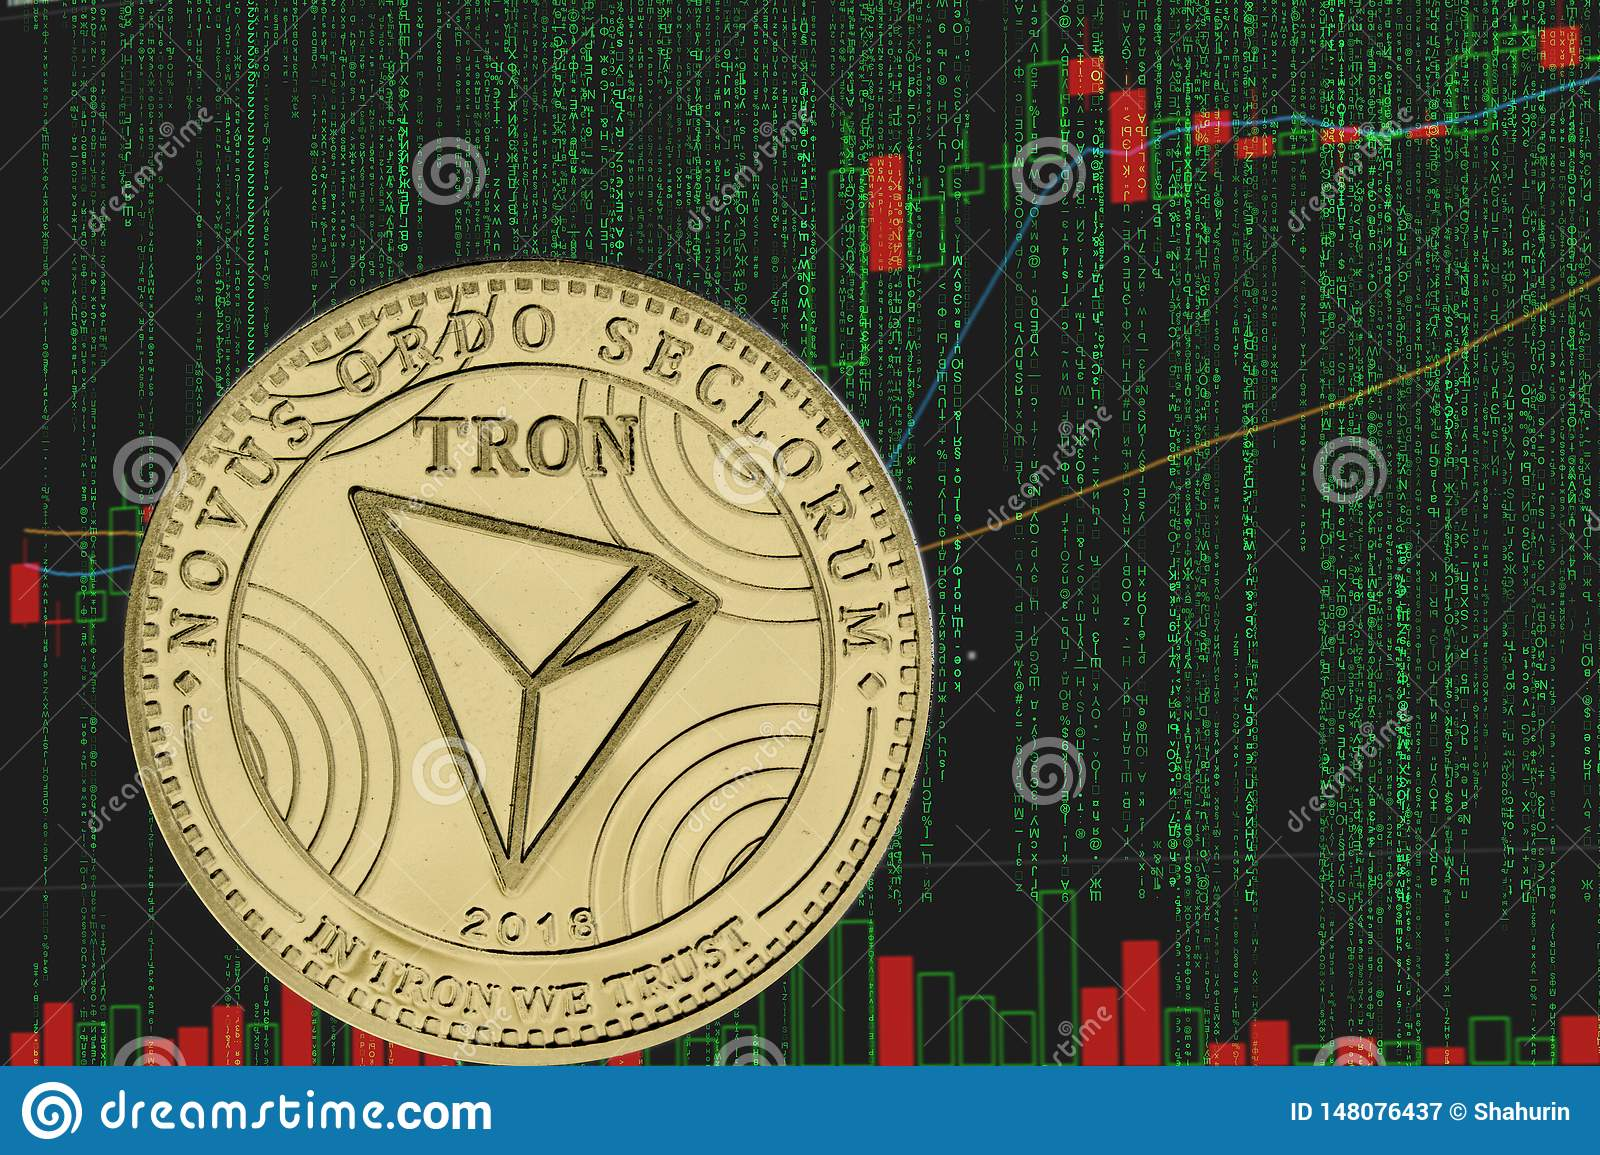 how much does it cost for trx cryptocurrency